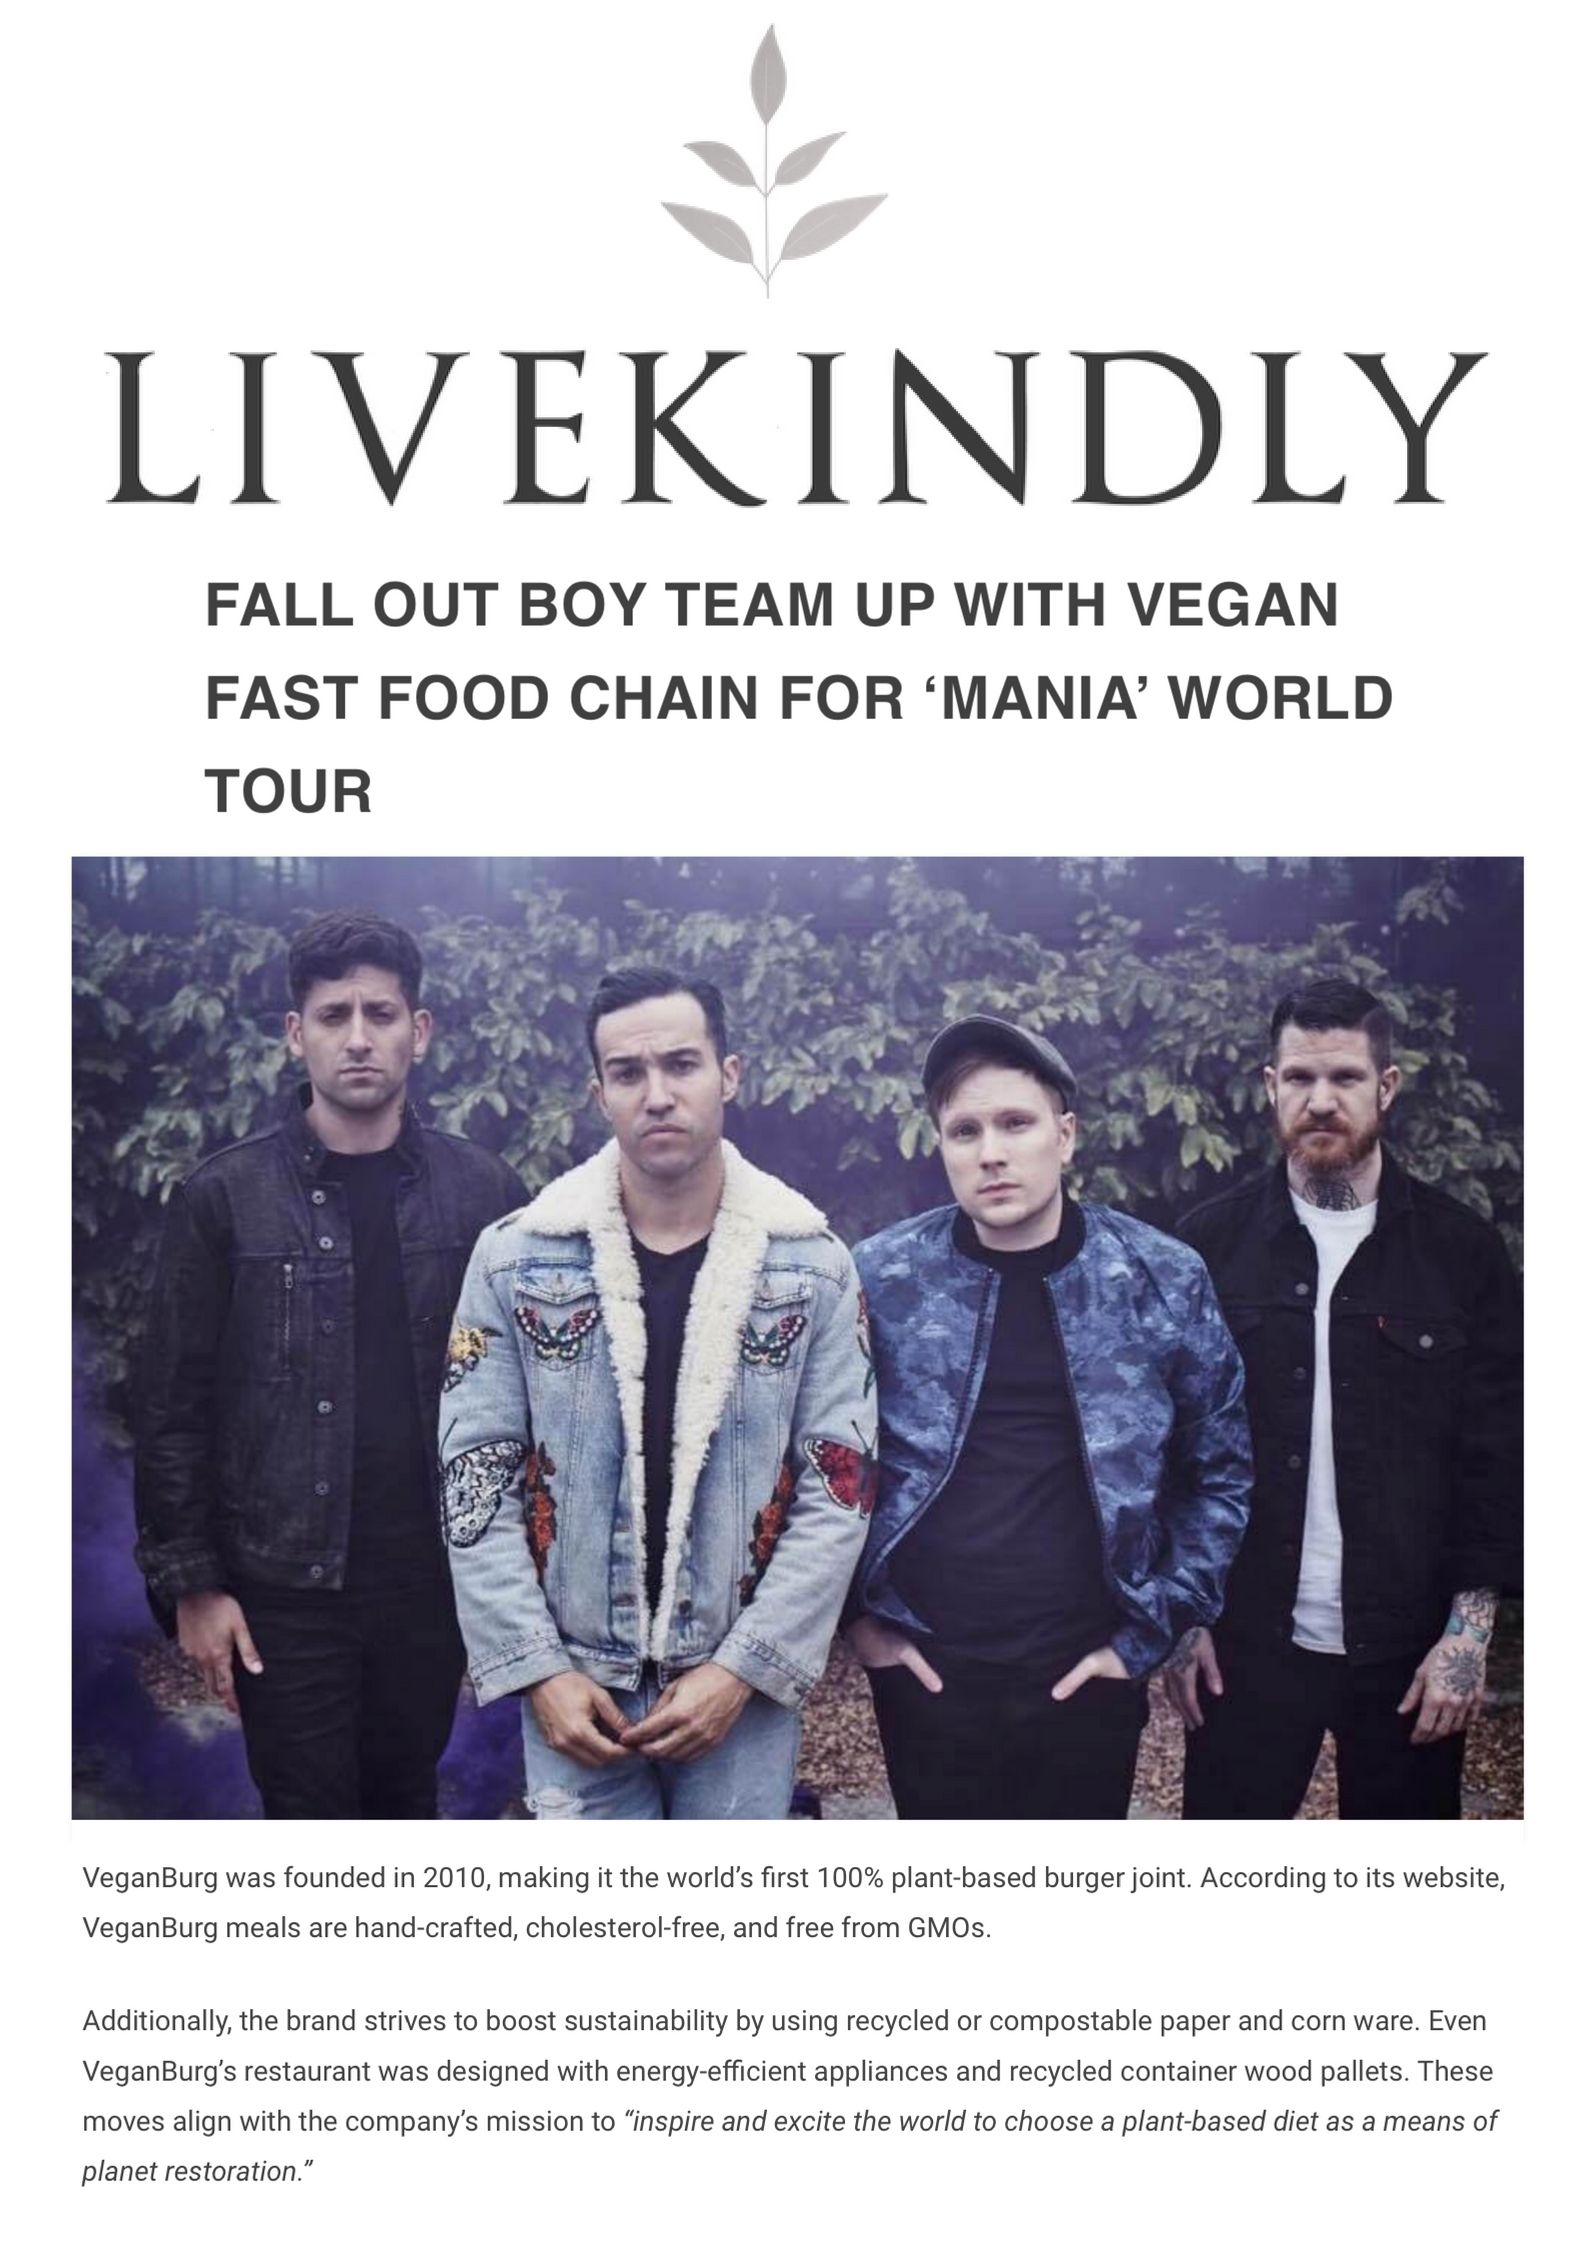 """Vegan fast food burger chain, VeganBurg, has revealed it is the """"official food provider"""" for rock band Fall Out Boy's upcoming world tour, which celebrates their recent album Mania_.jpg"""